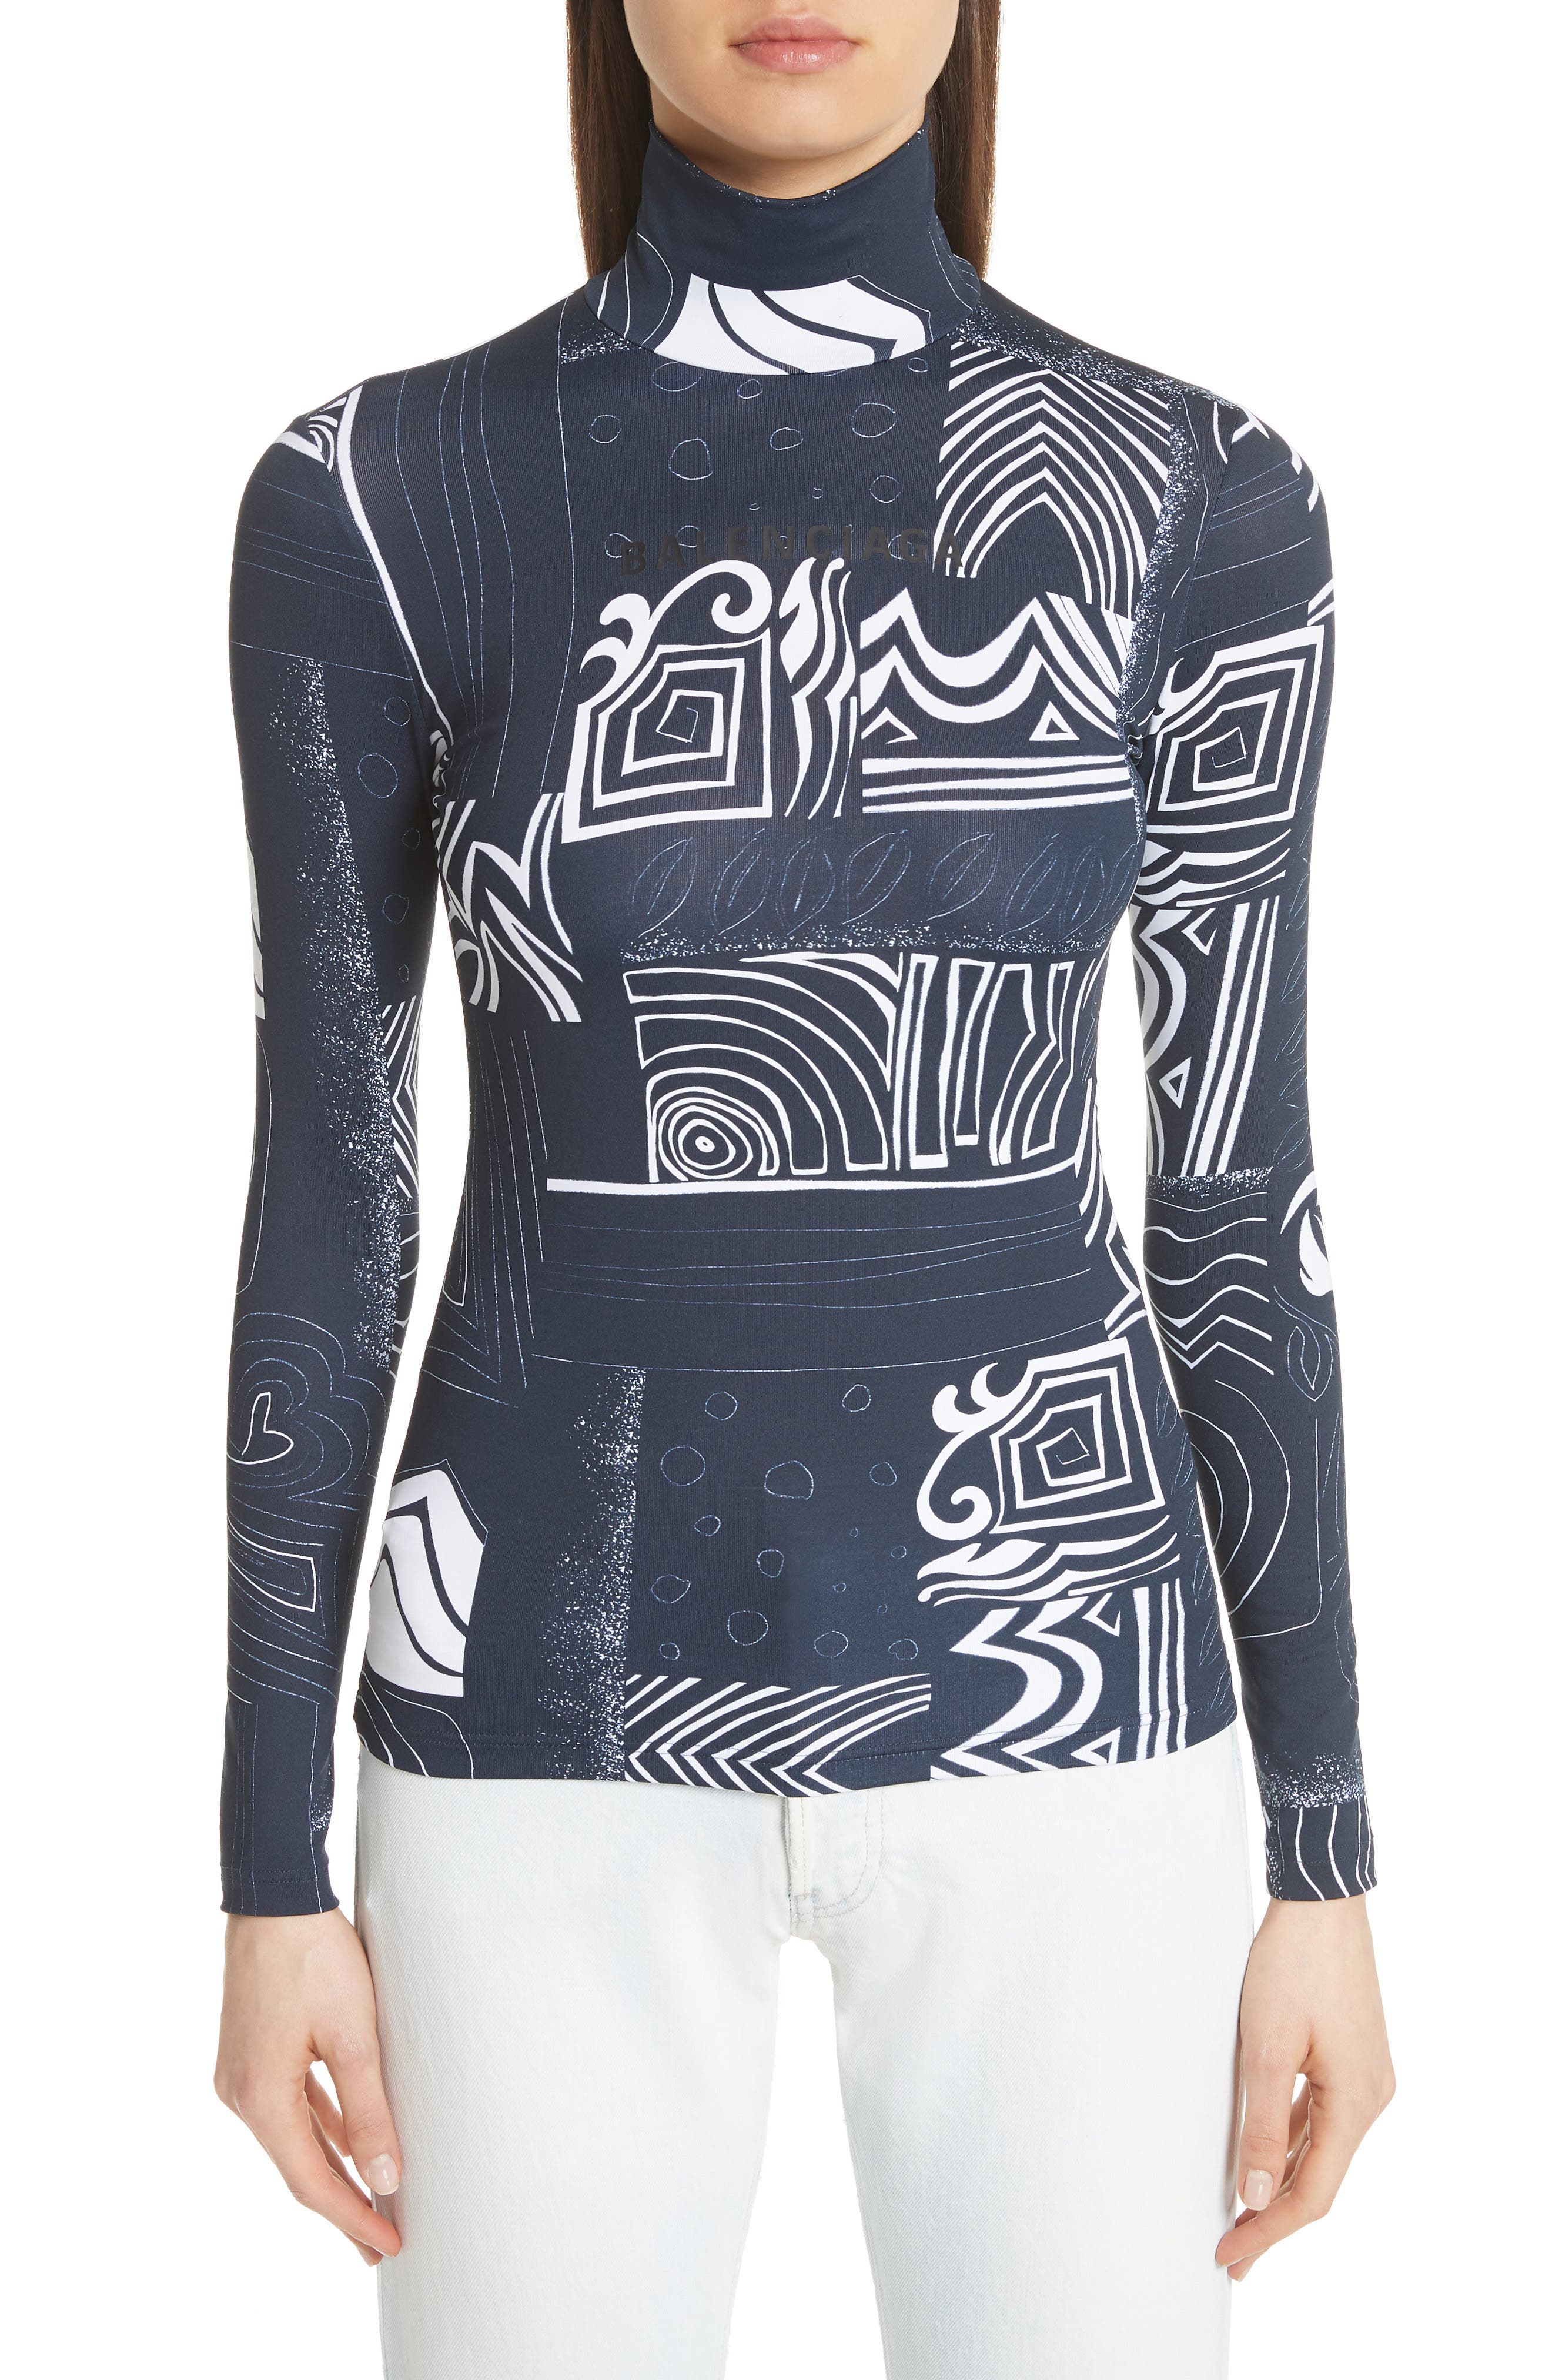 Graphic Print Jersey Top by Balenciaga